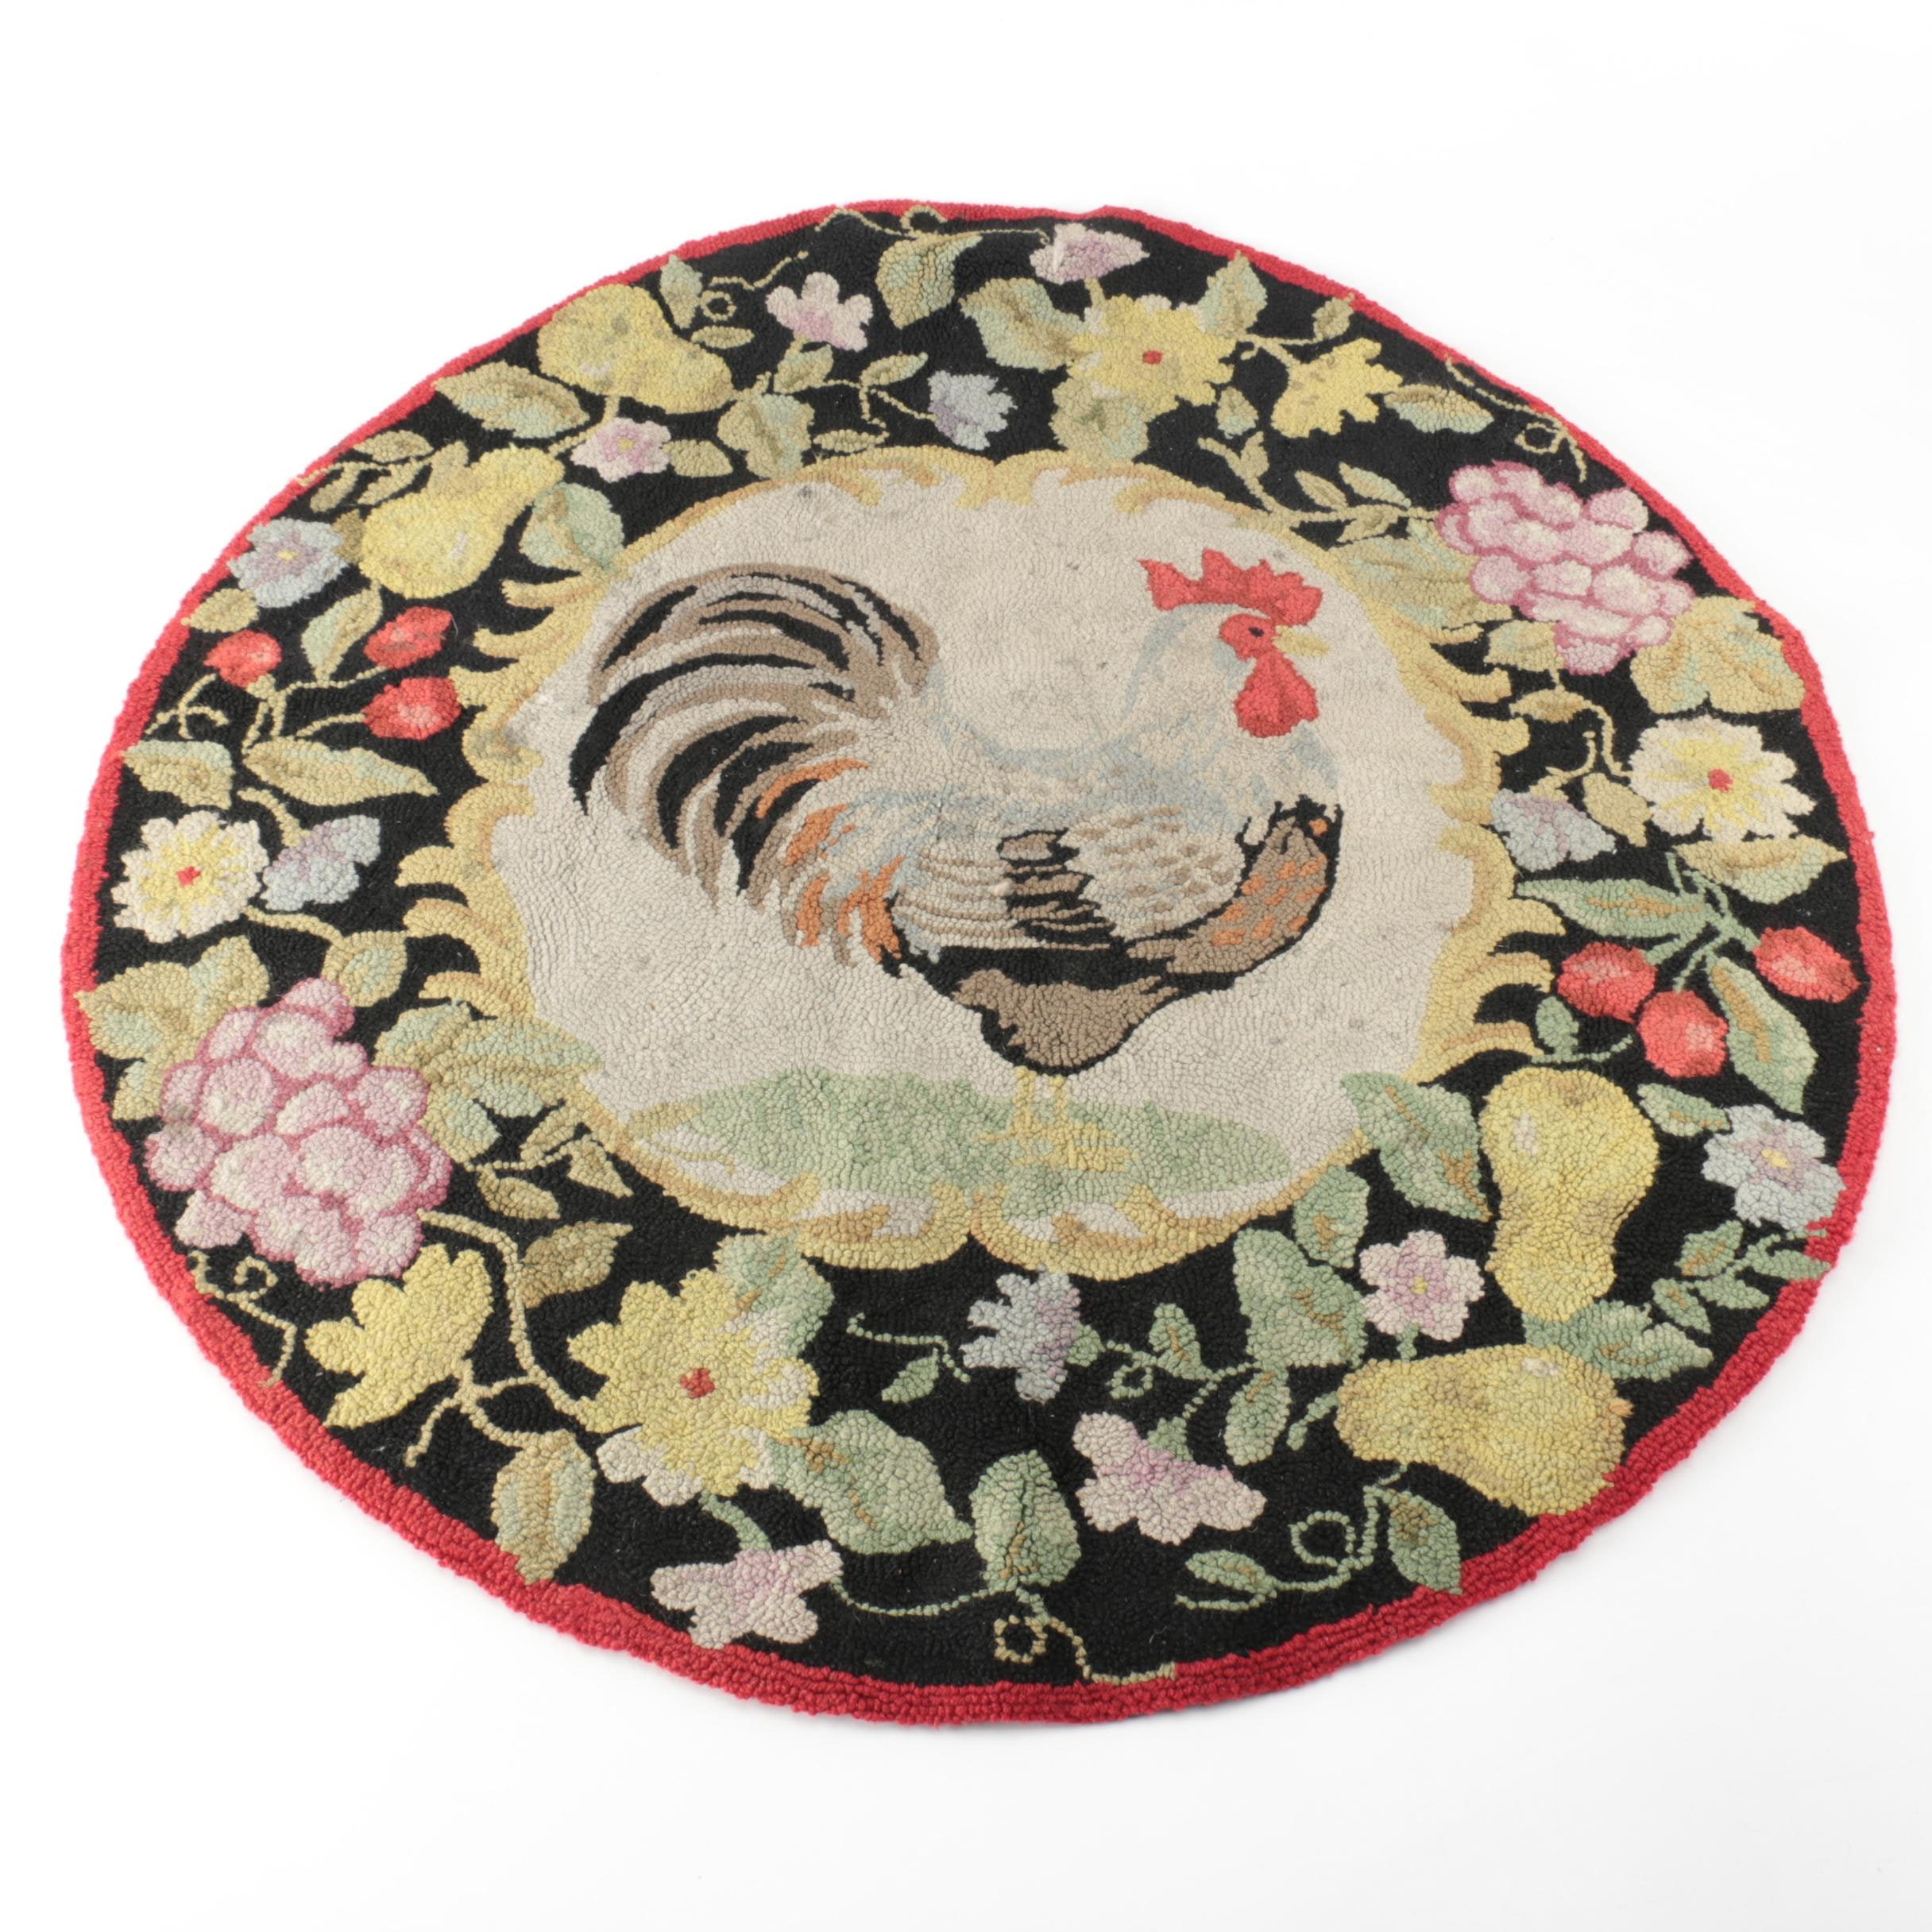 Hooked Rooster and Fruit Themed Round Wool Rug